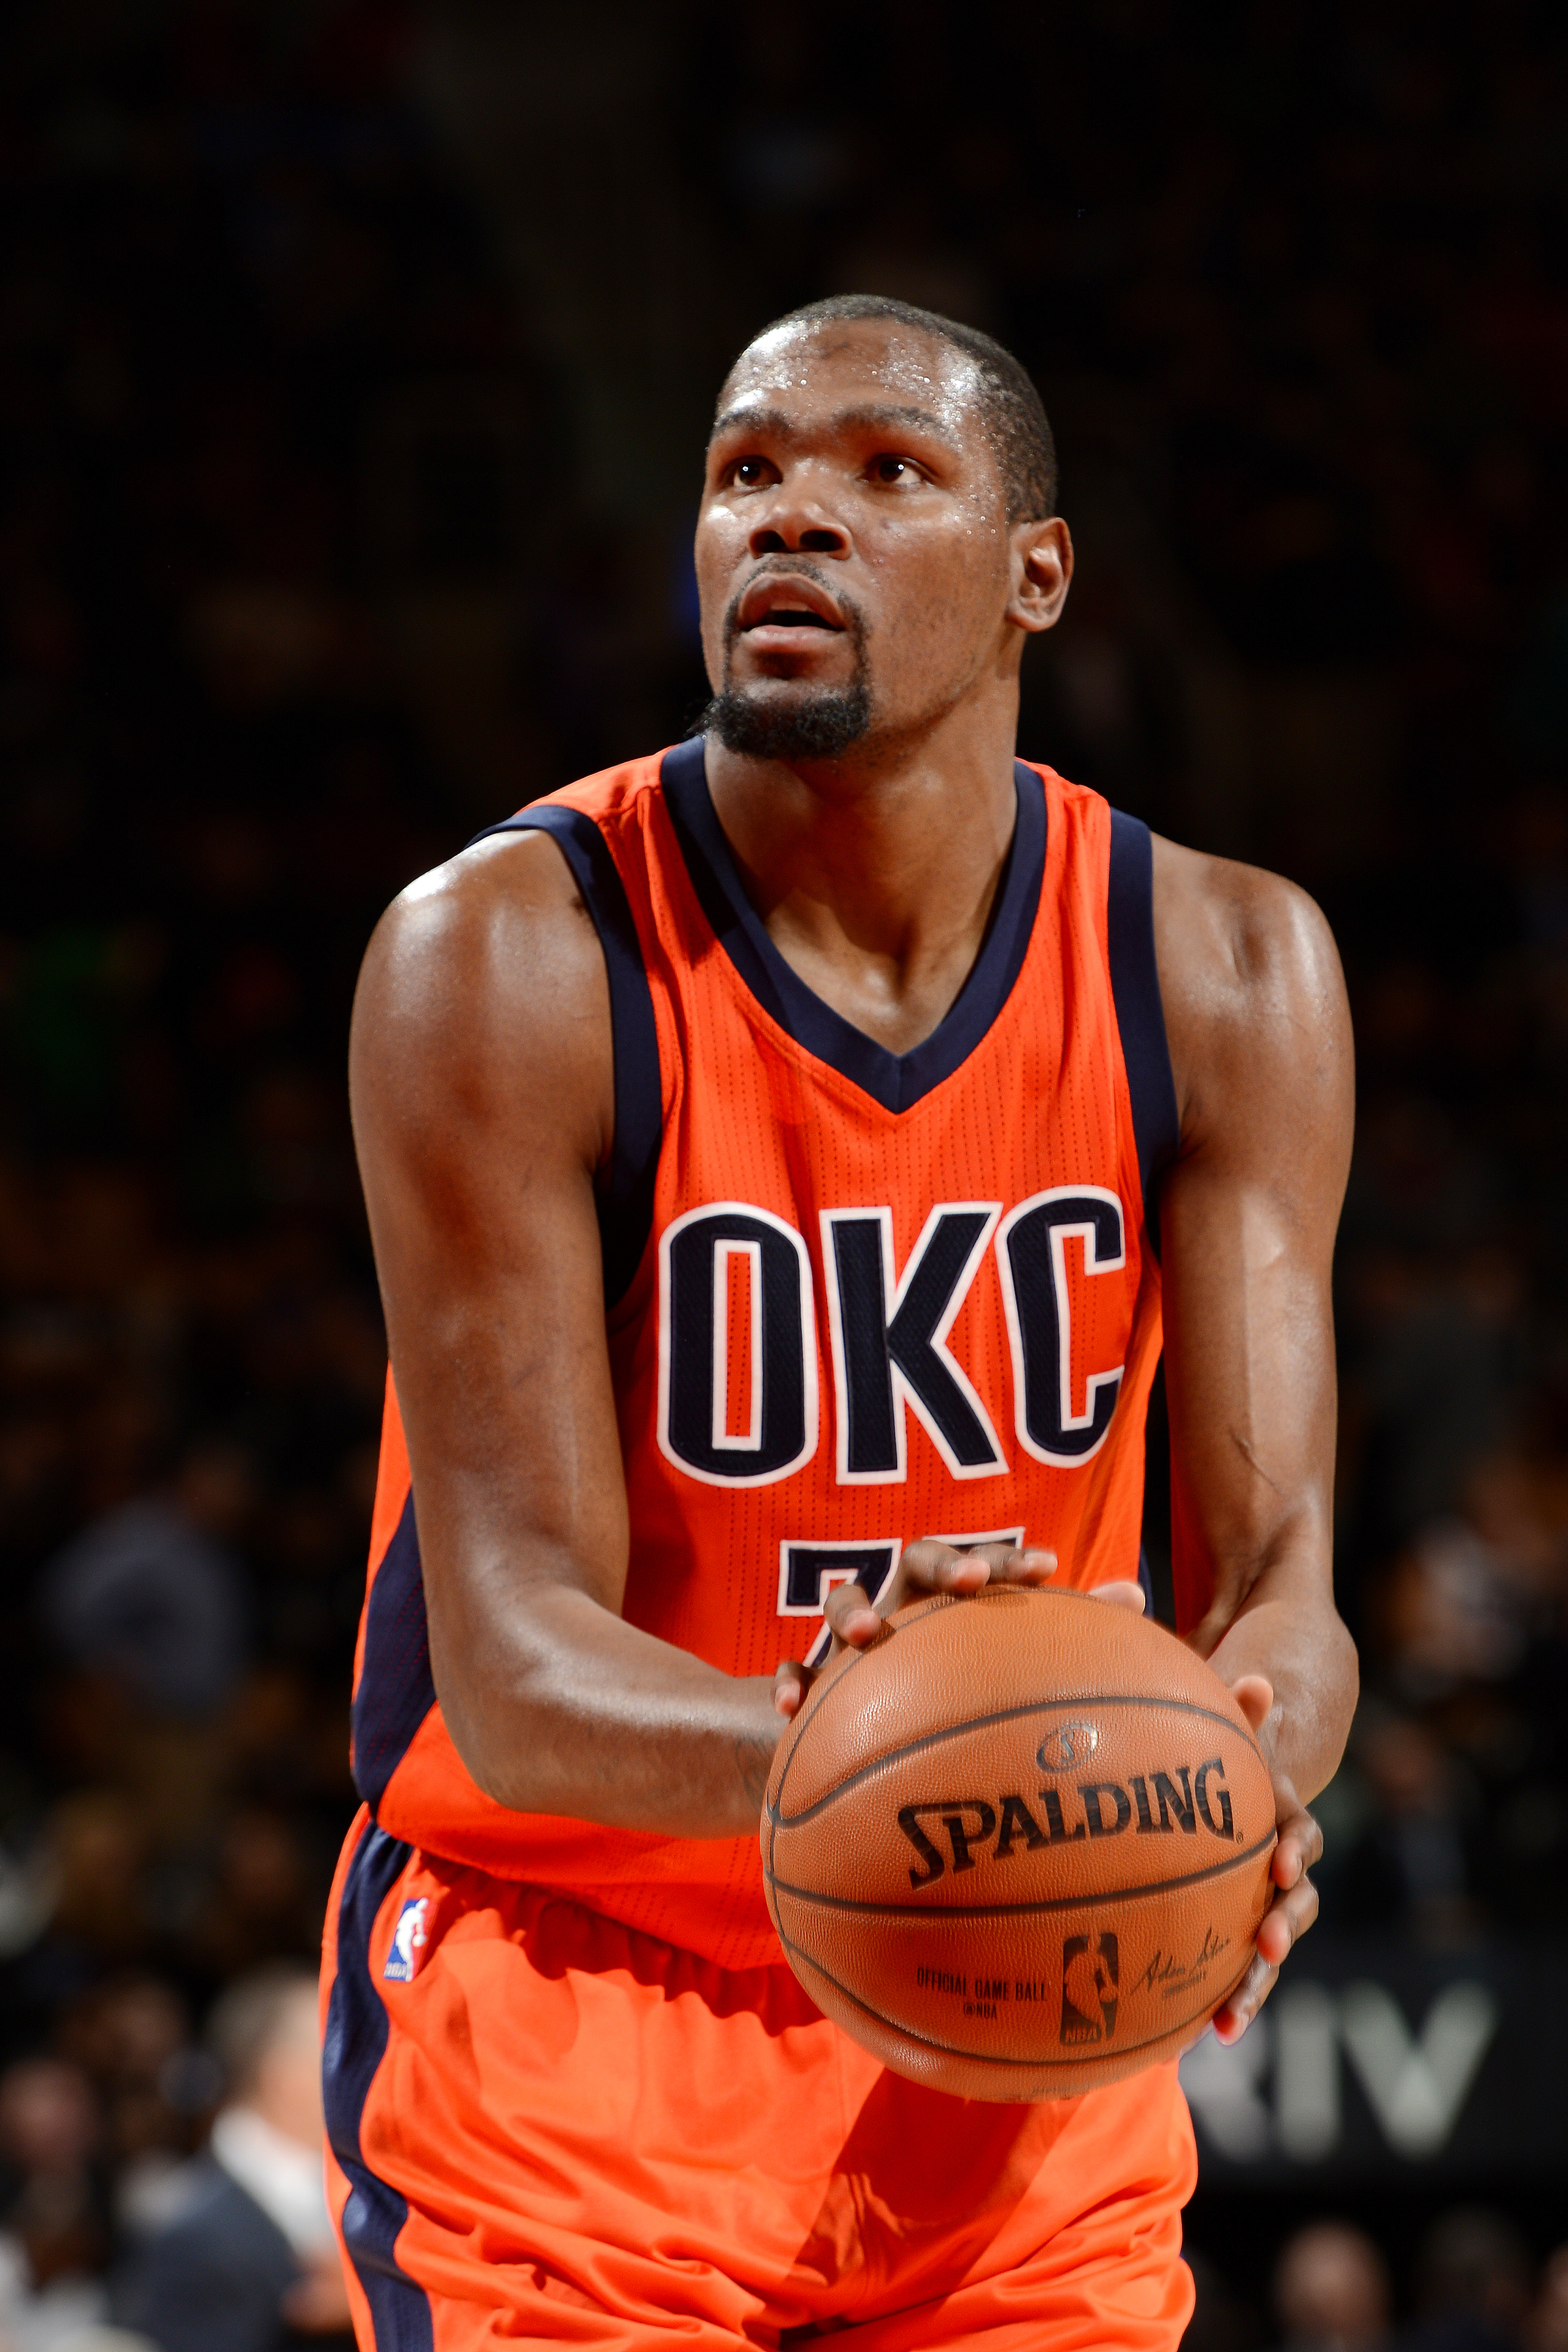 TORONTO, CANADA - MARCH 28: Kevin Durant #35 of the Oklahoma City Thunder shoots a free throw during the game against the Toronto Raptors on March 28, 2016 at the Air Canada Centre in Toronto, Ontario, Canada.  (Photo by Ron Turenne/NBAE via Getty Images)